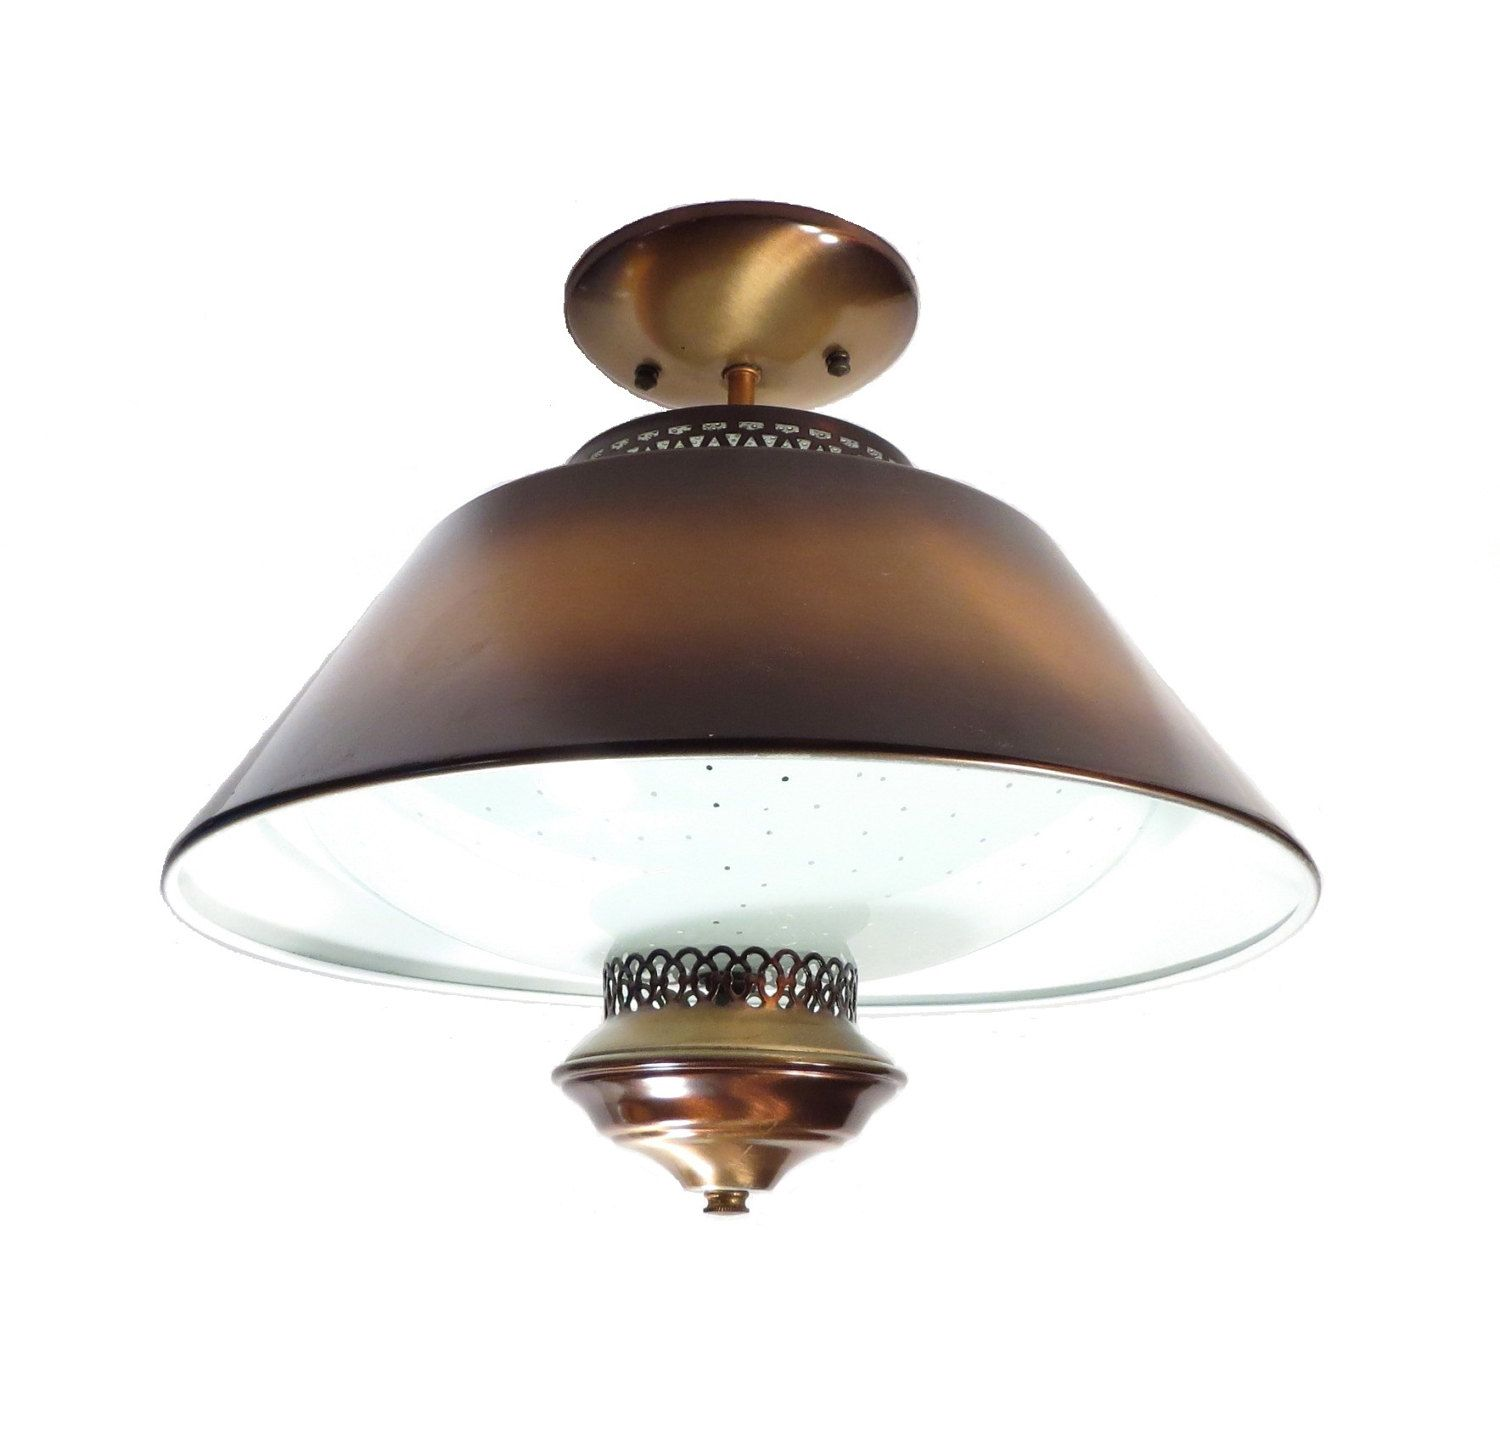 Copper Rustic Decor Ceiling Lamp Vintage 1950s Flush Mount Farmhouse Kitchen Light Fixture by